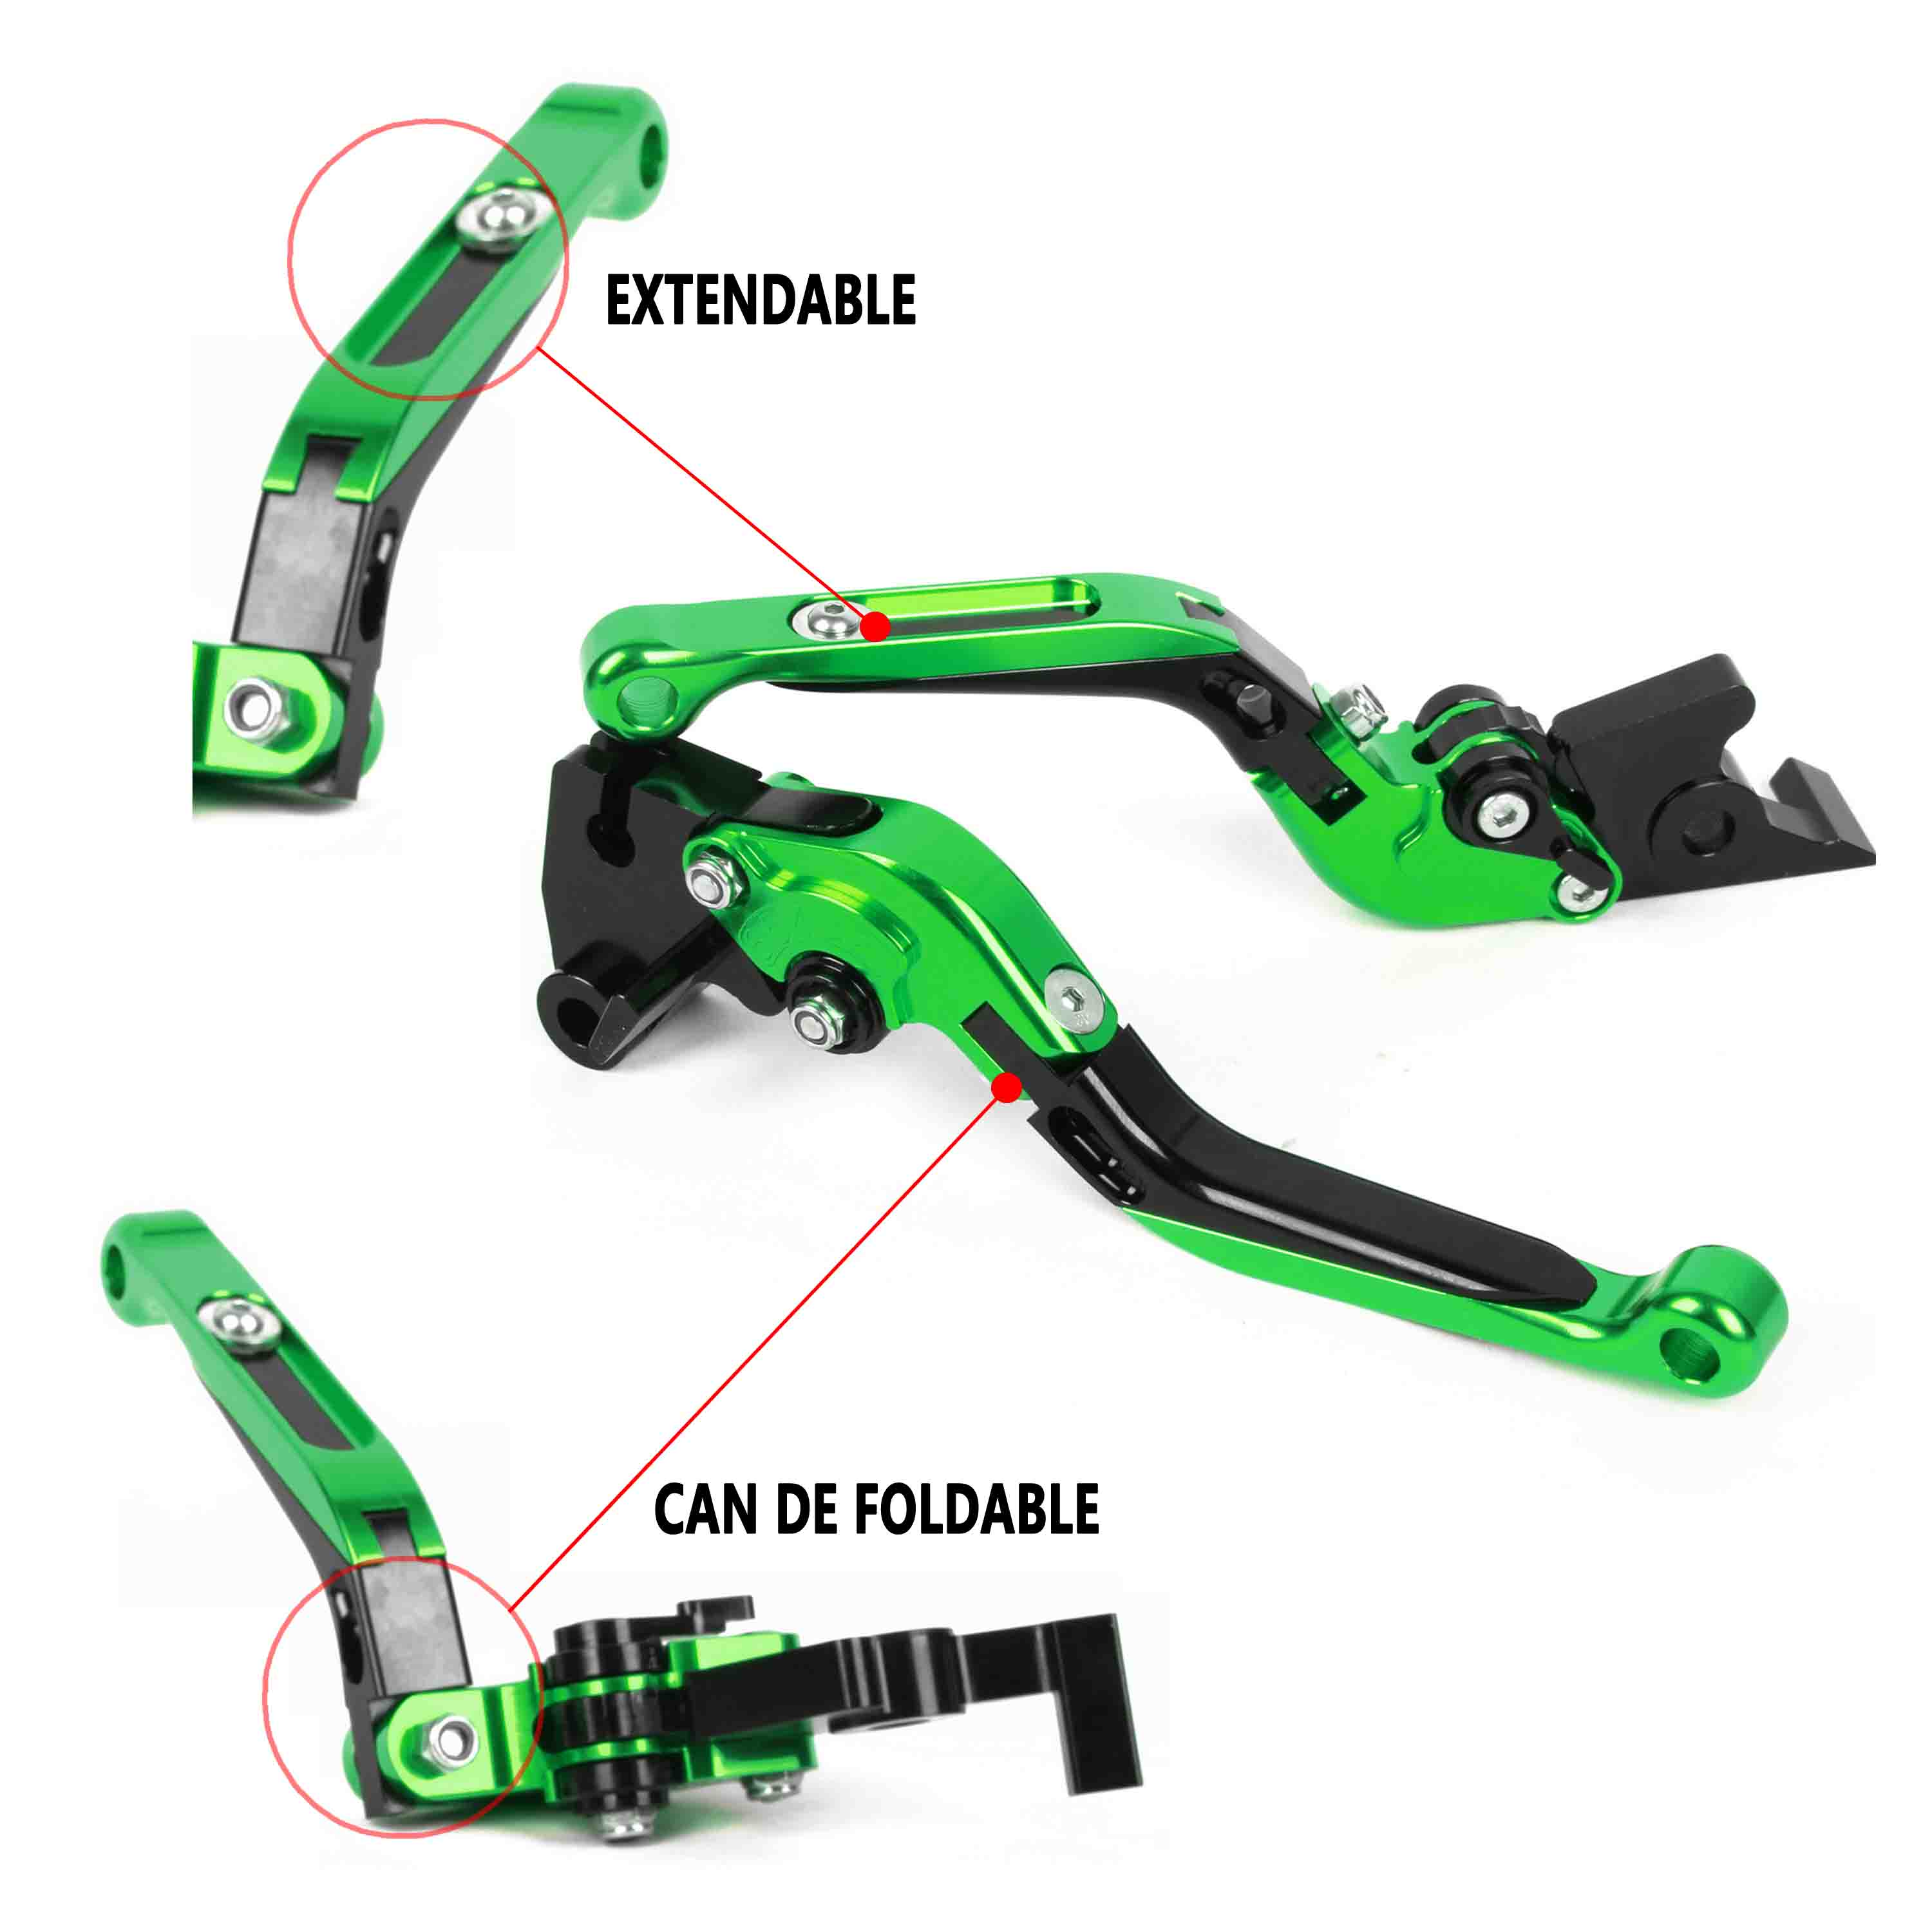 ФОТО For Kawasaki GTR1400/CONCOURS 14 2007-2016 Foldable Extendable Brake Clutch Levers CNC High-quality Folding&Extending Hot Sale